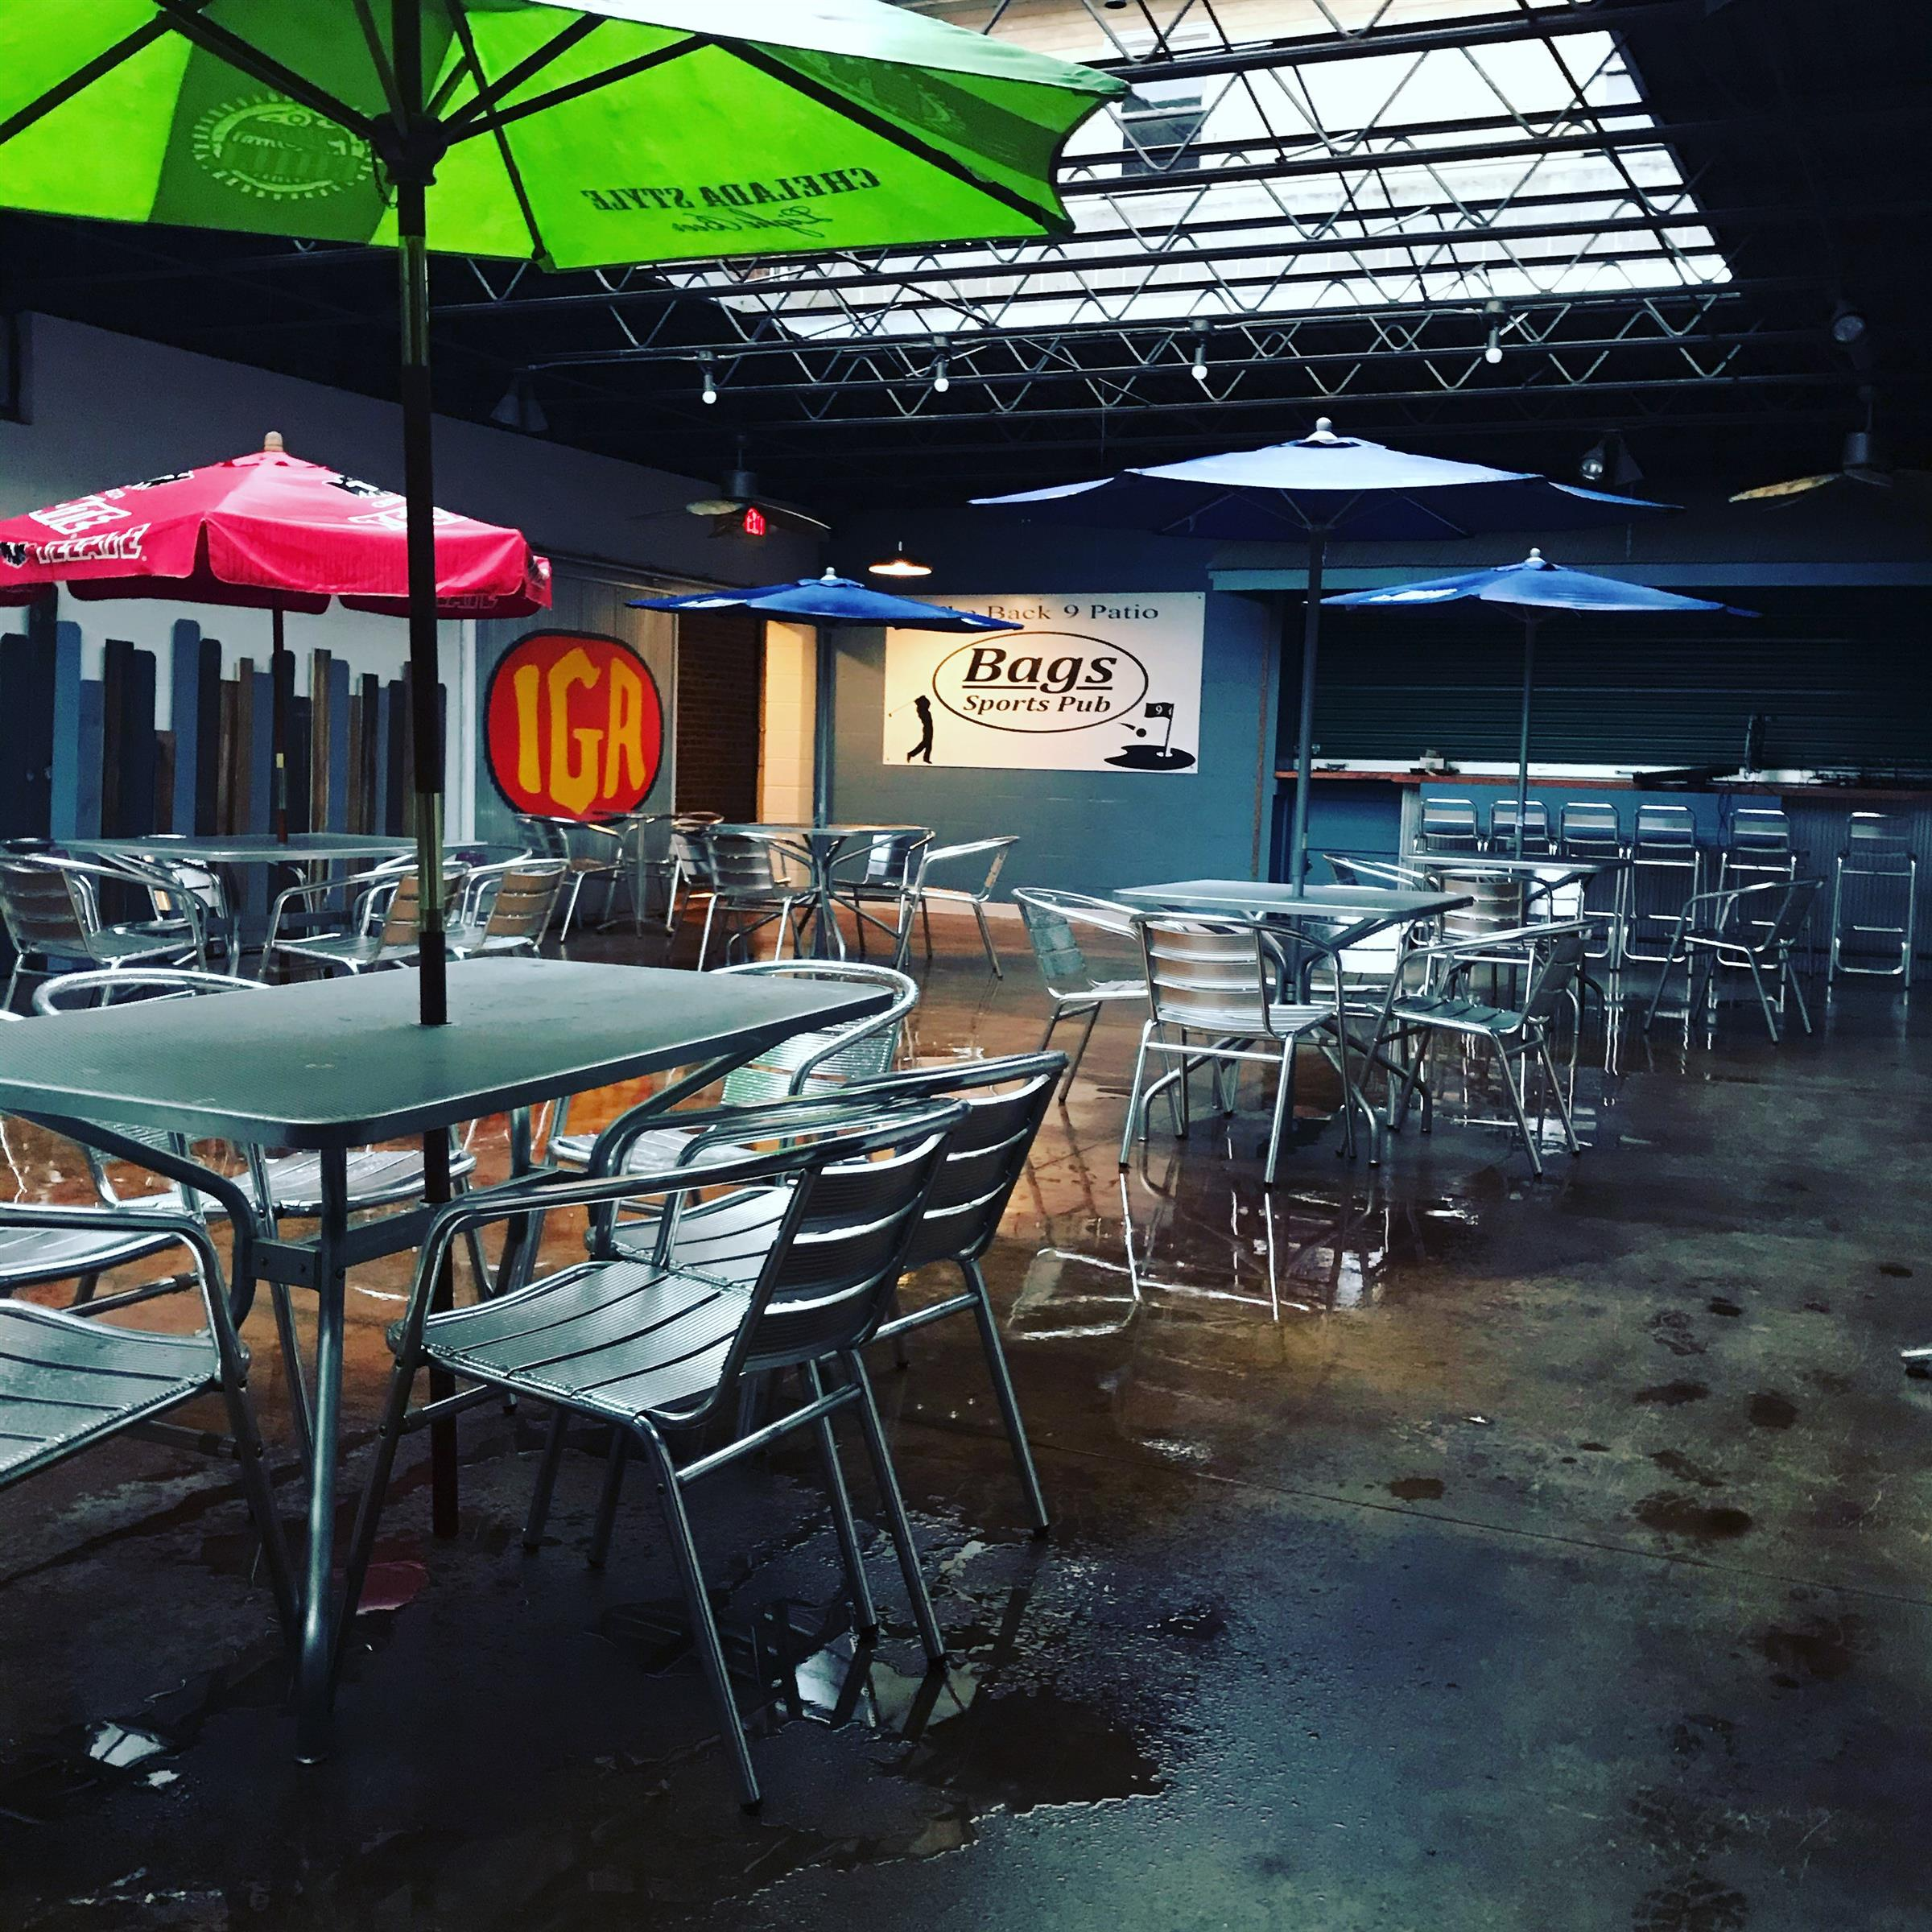 back 9 patio at bags with metal tables and chairs and umbrellas